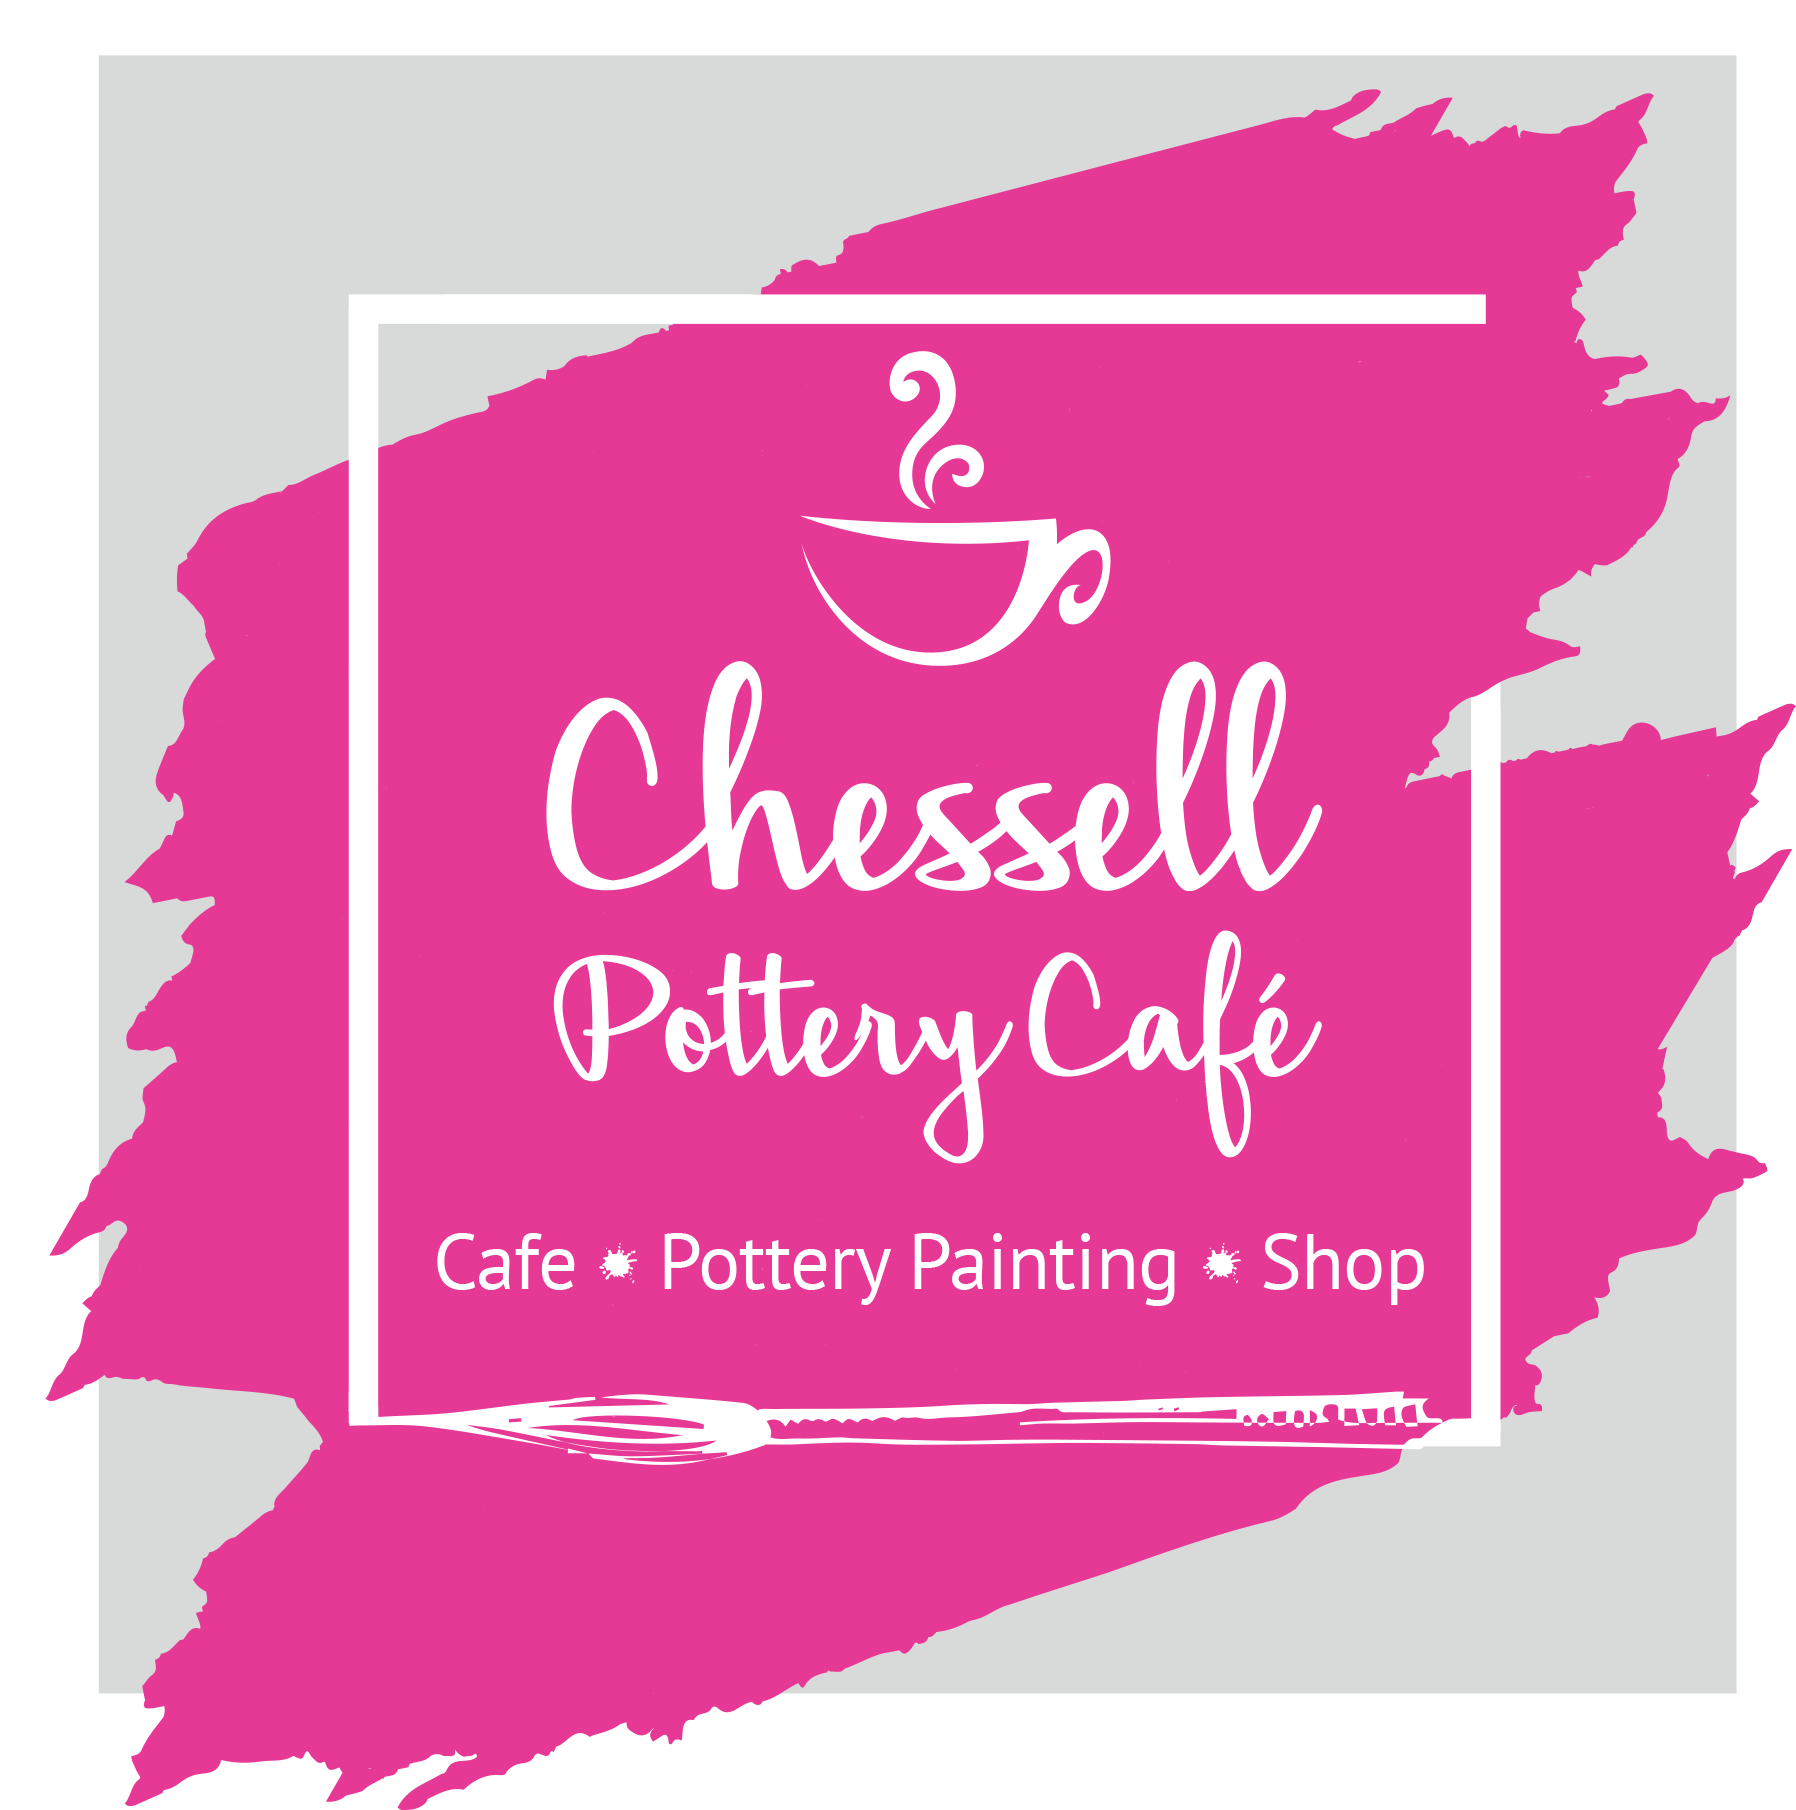 Chessell Pottery Café